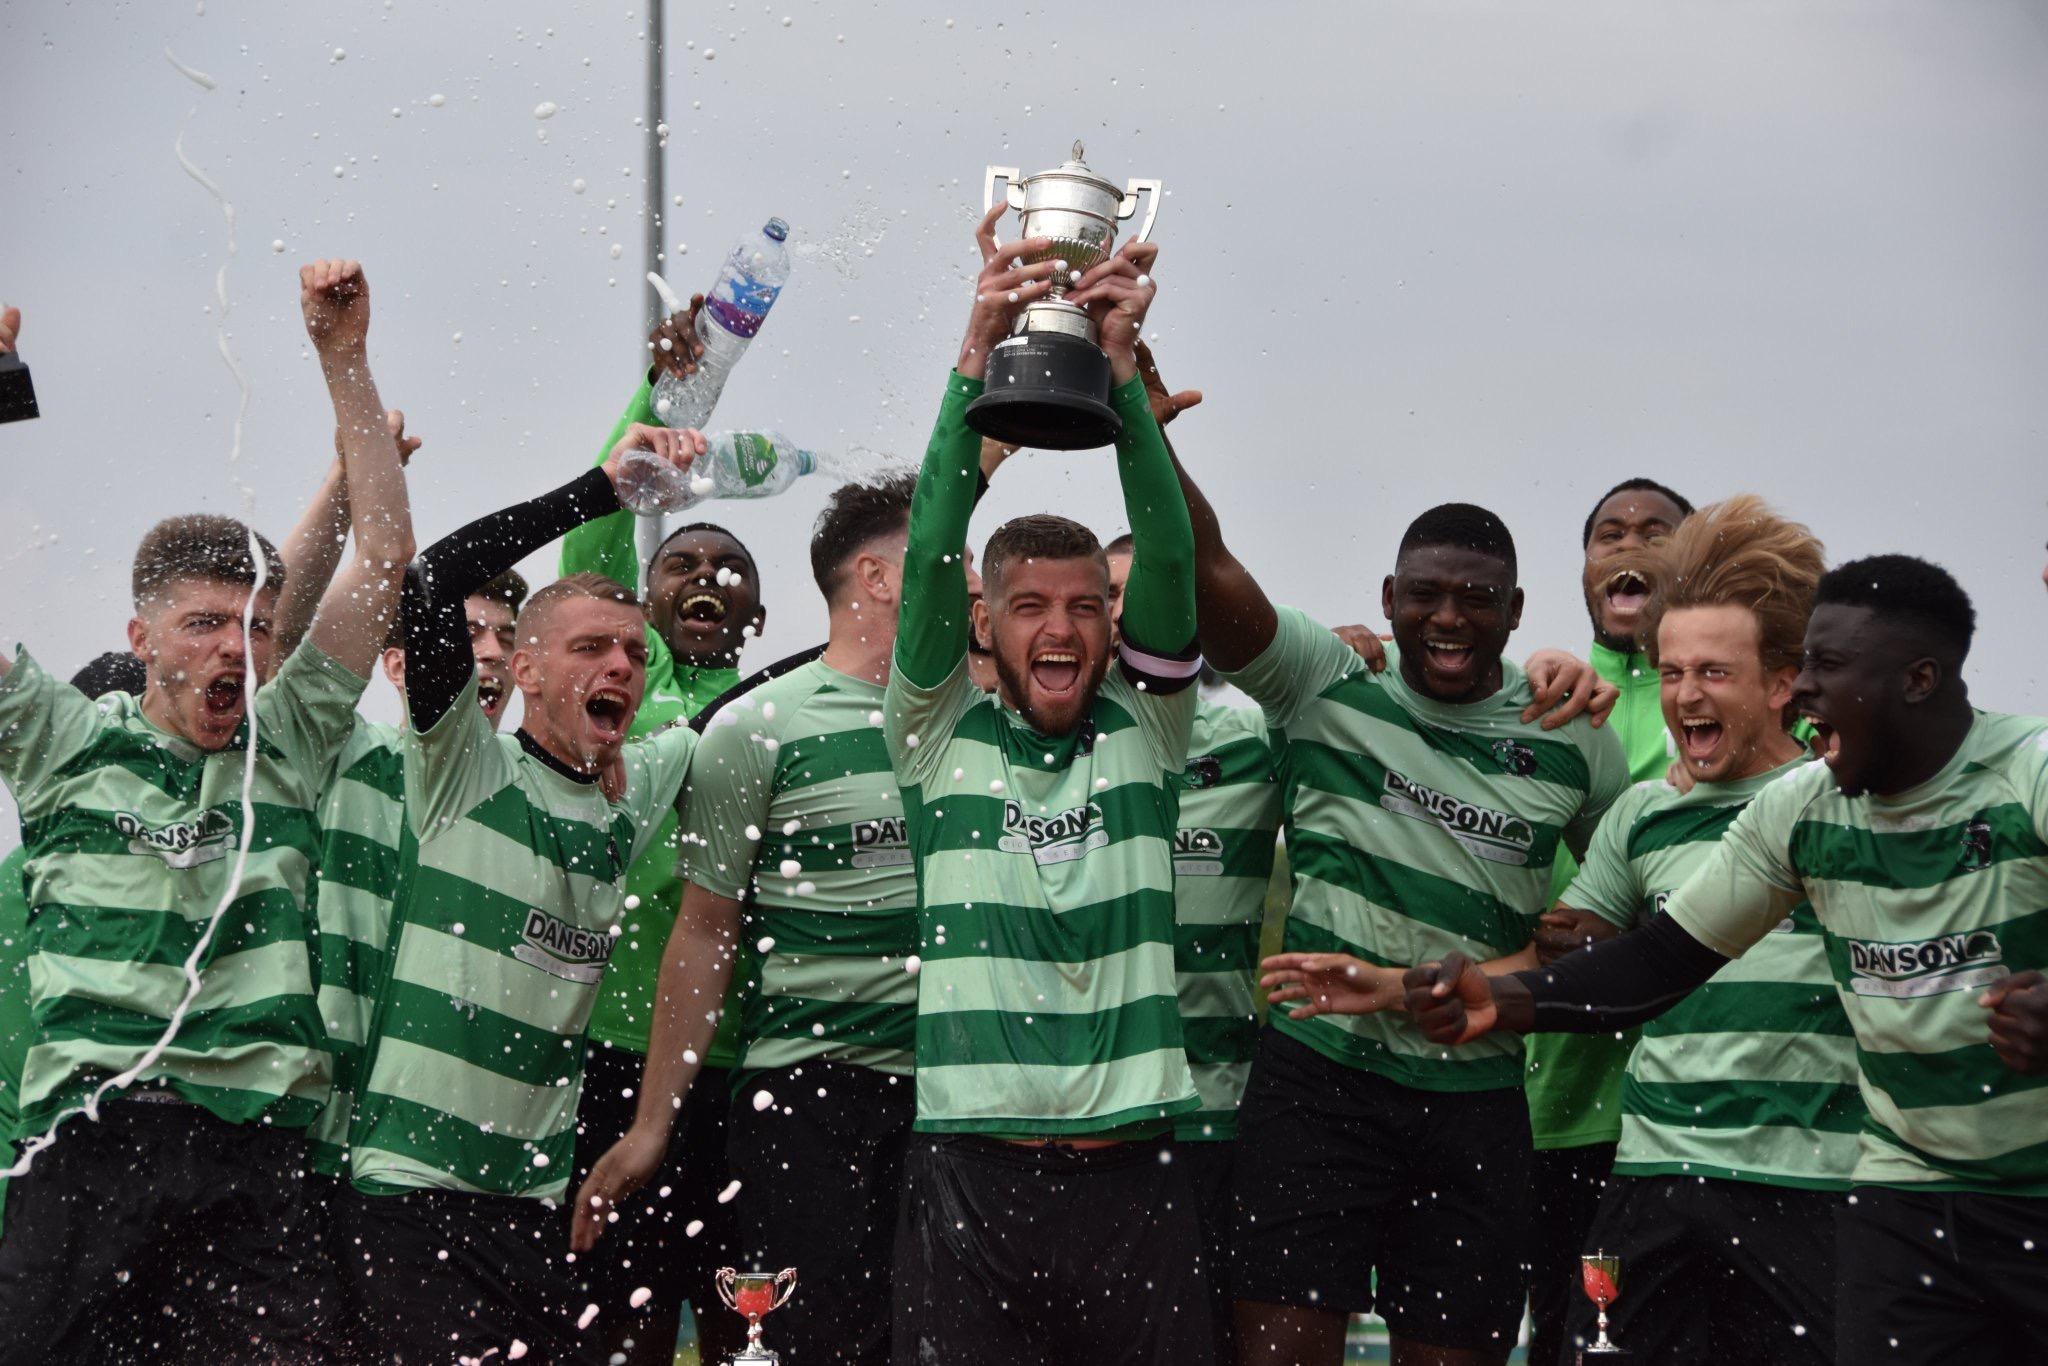 Welling Town A lift the Plumstead Challenge Cup